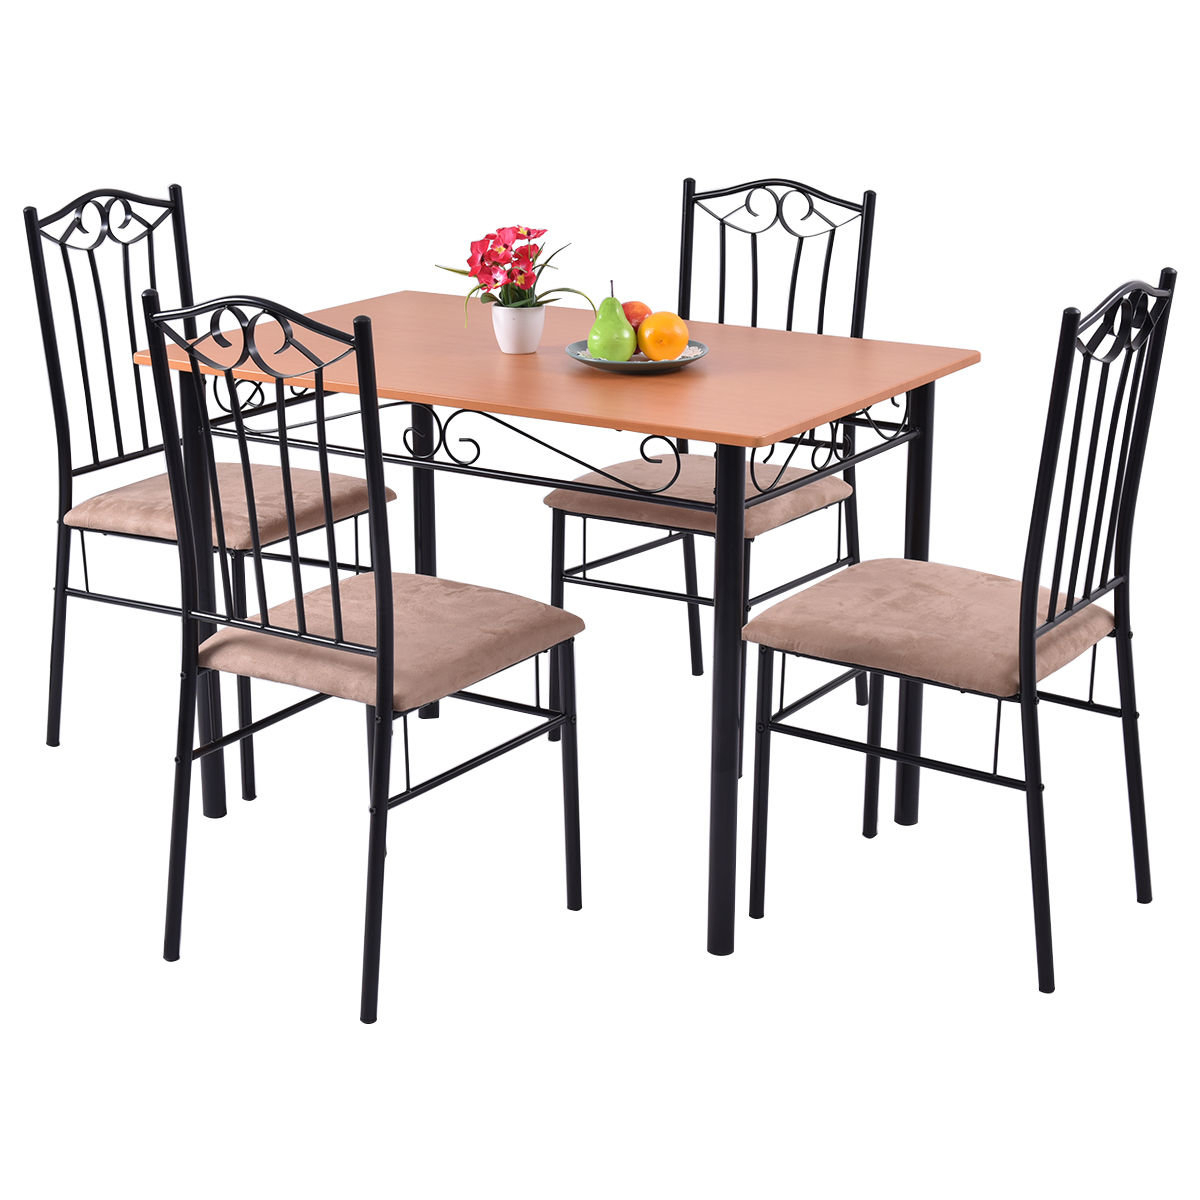 Rossi 5 Piece Dining Set In Most Recent Casiano 5 Piece Dining Sets (View 15 of 20)